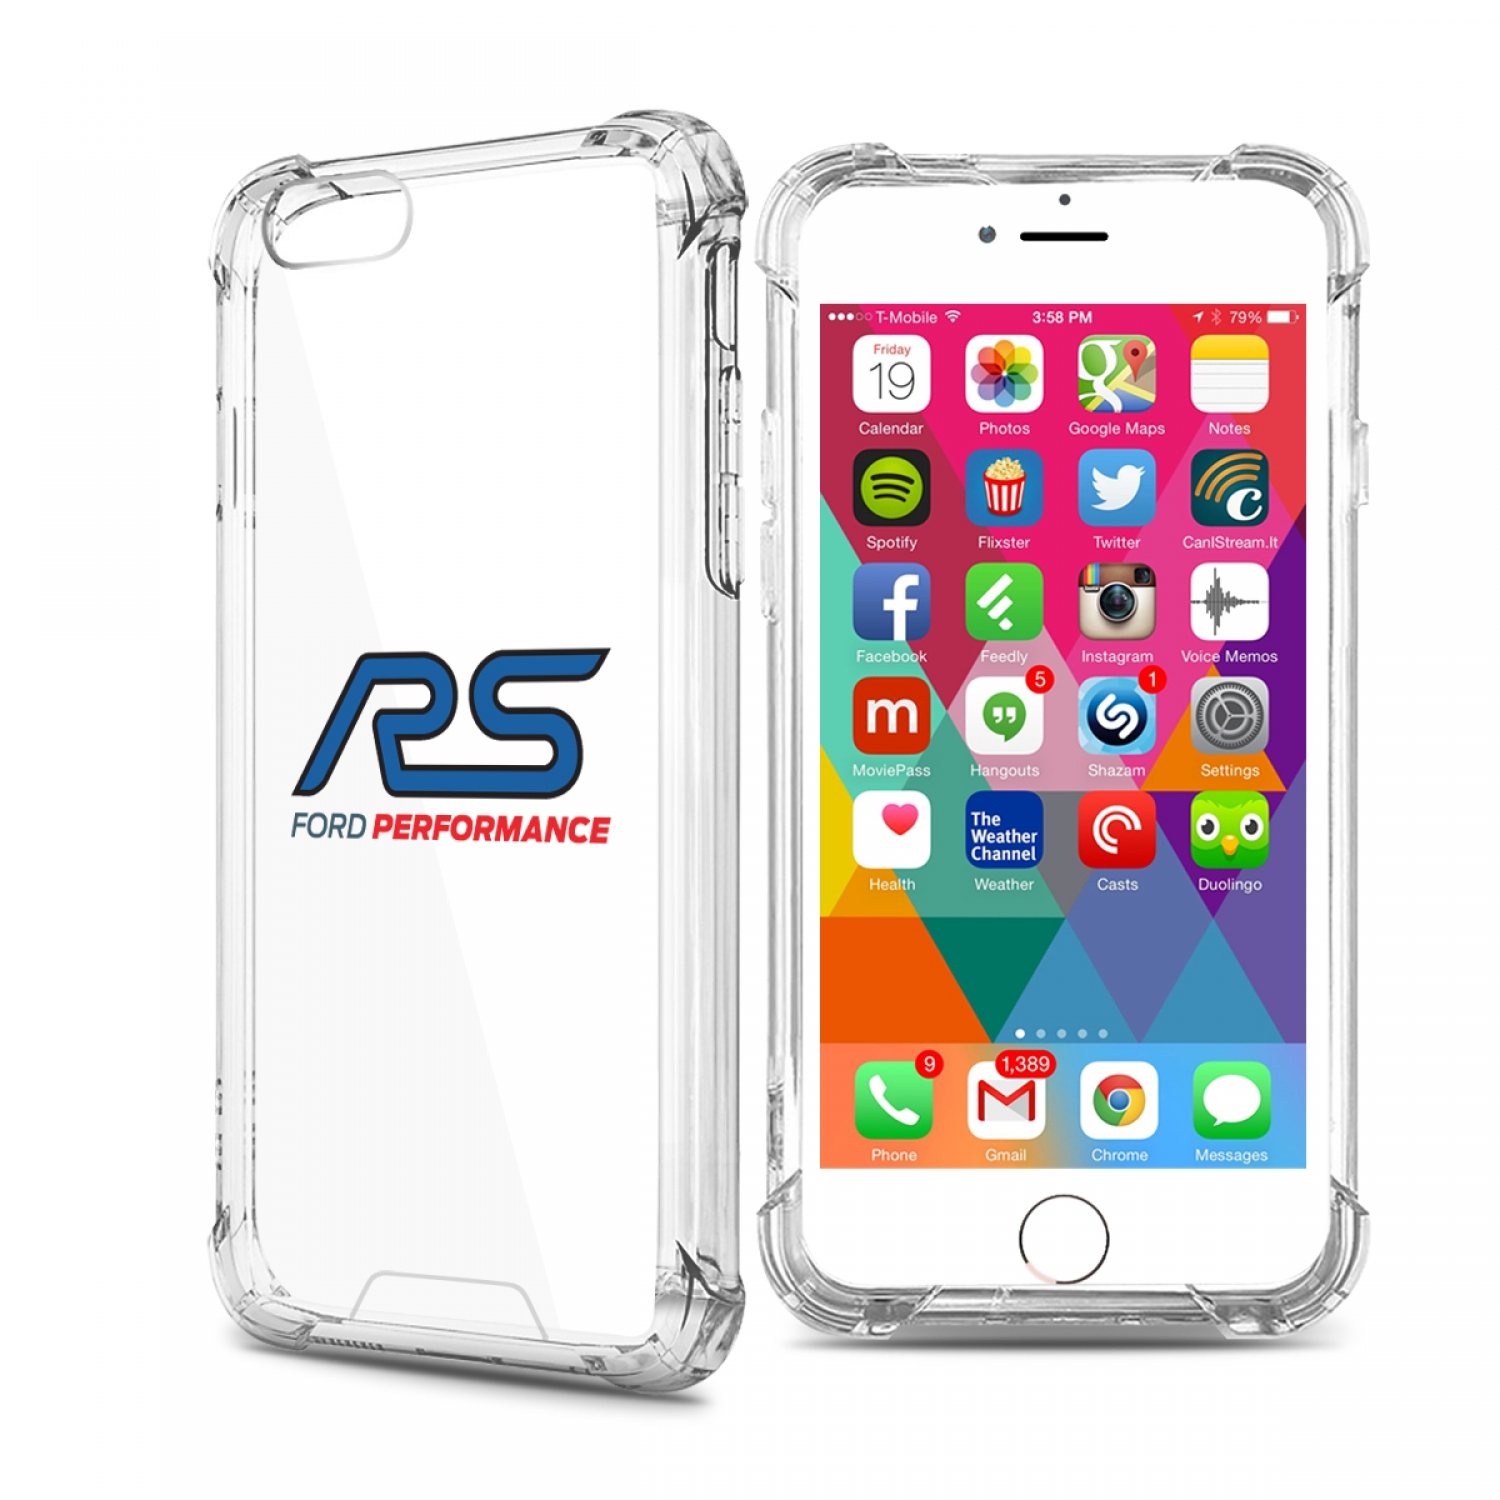 Ford Focus RS iPhone 7 Clear TPU Shockproof Cell Phone Case